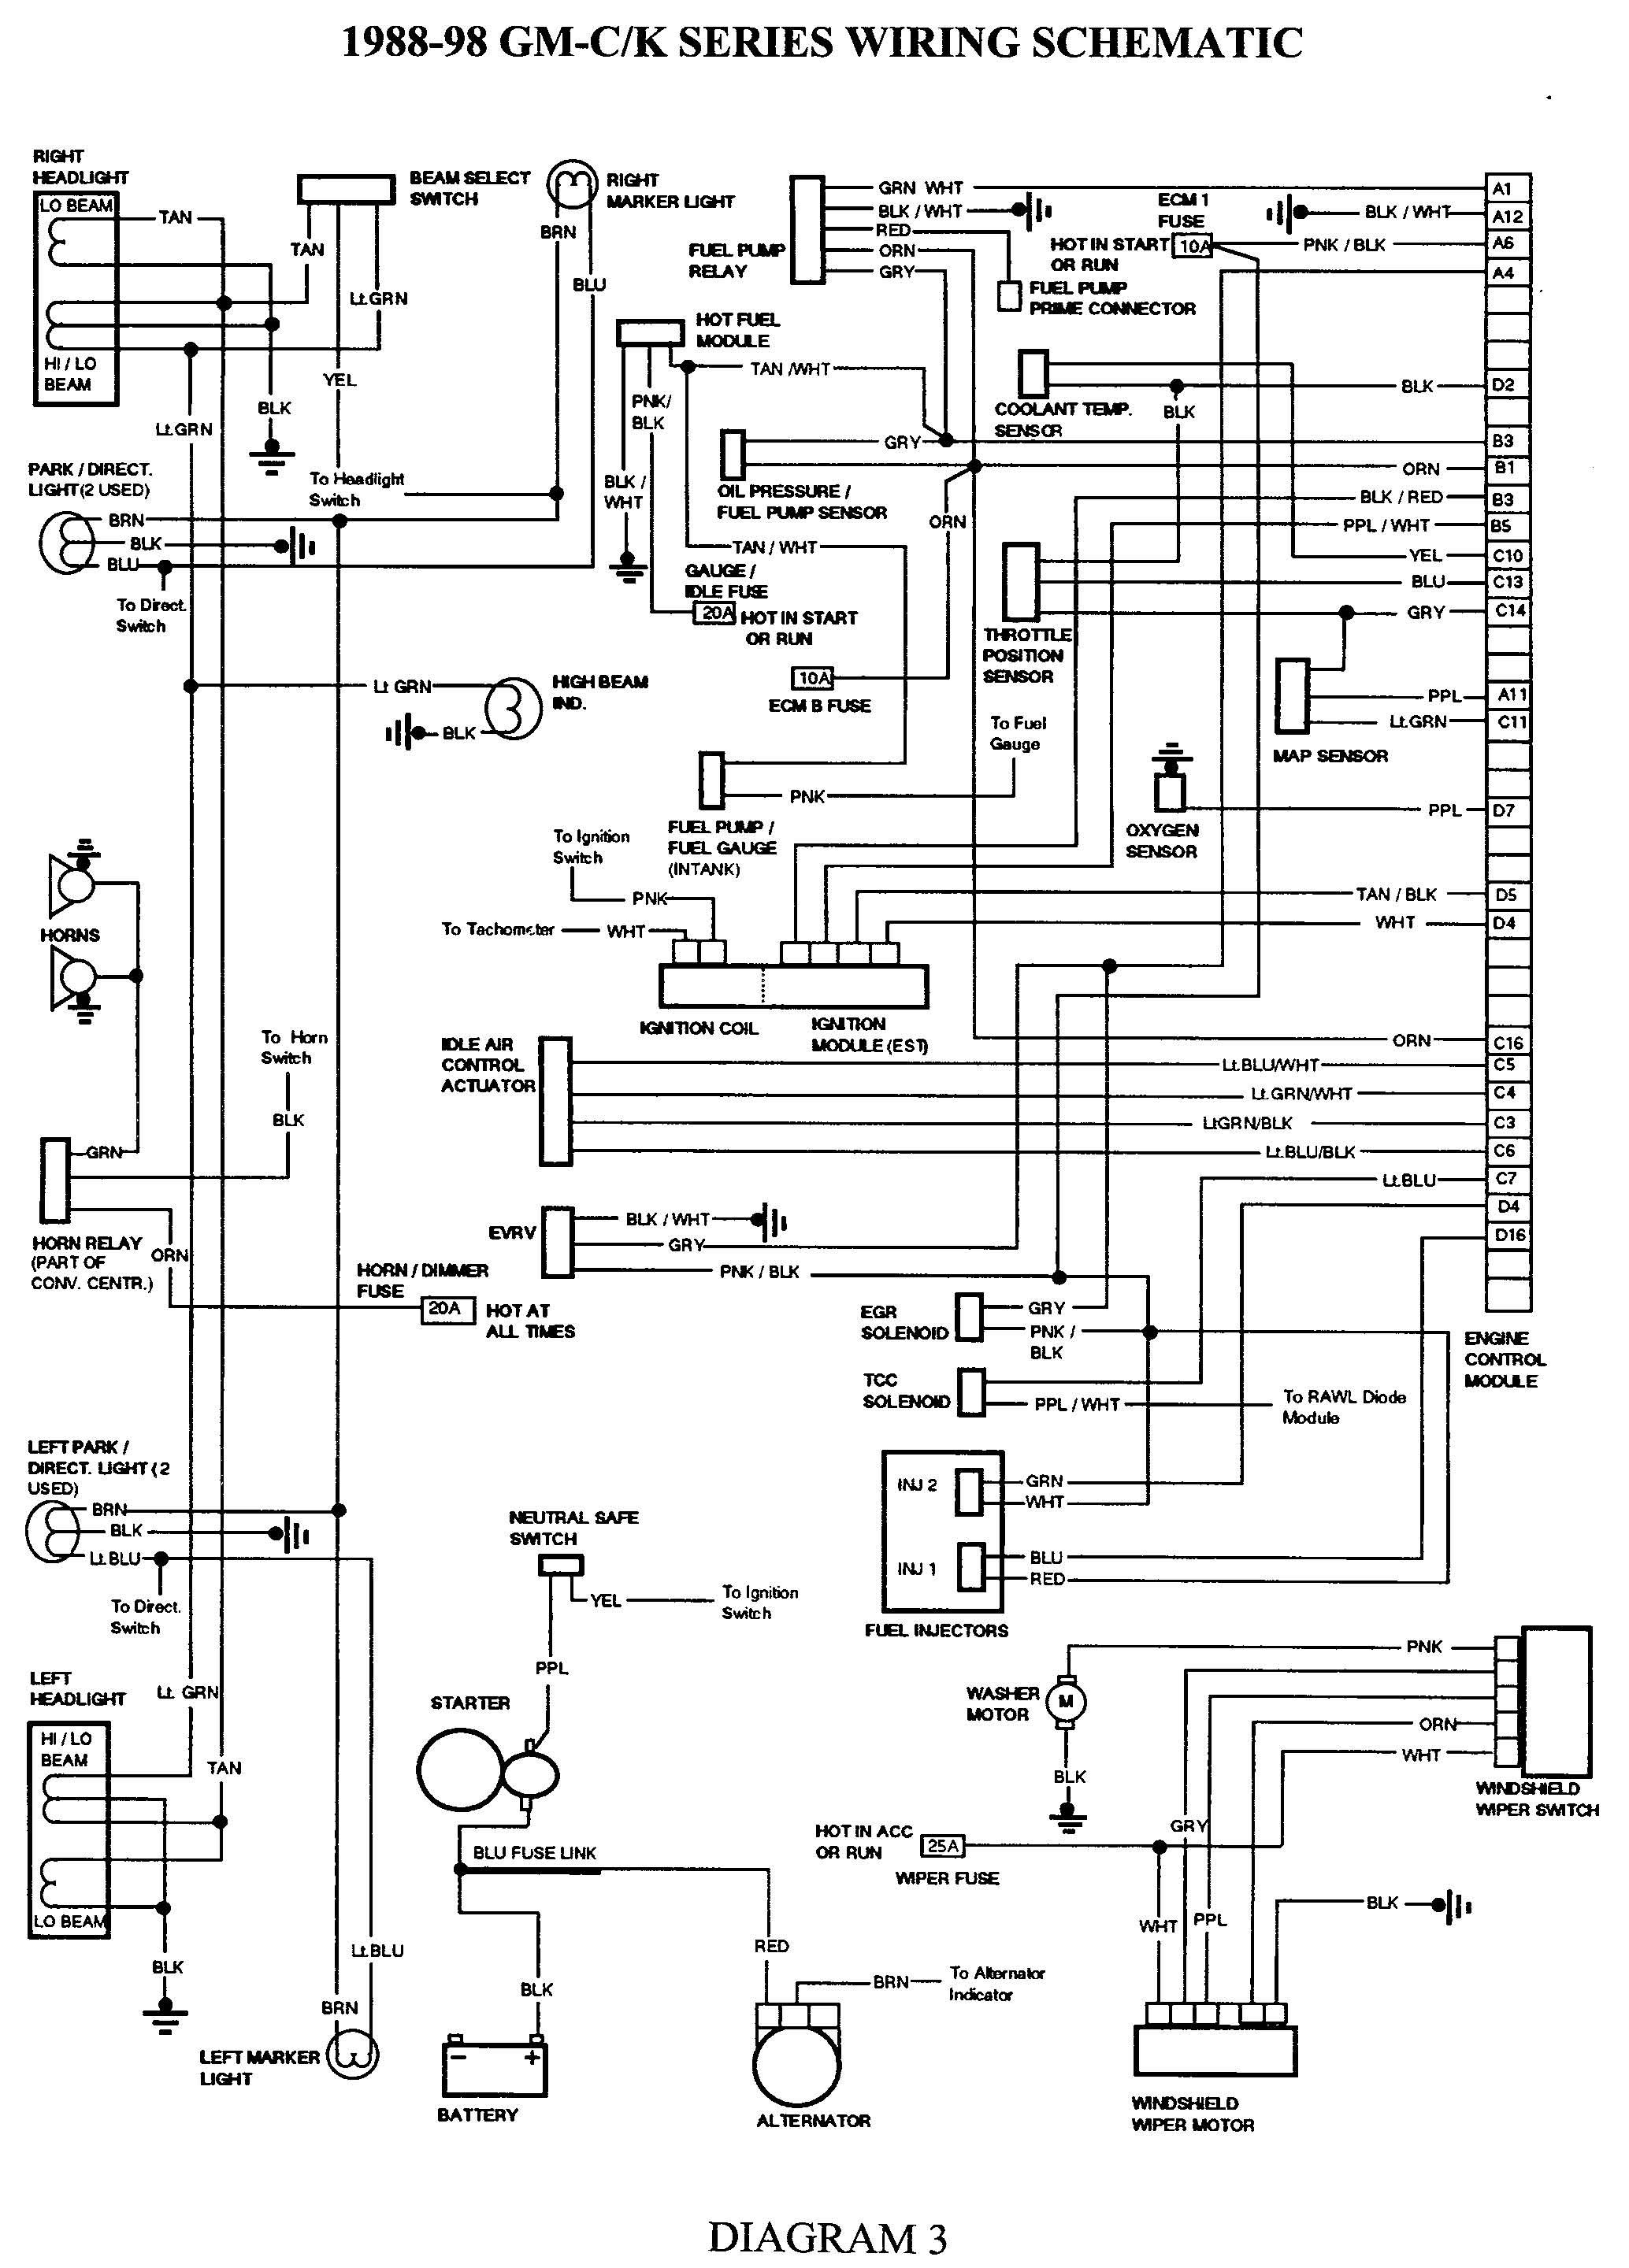 diagram harness wire engine 6709894 wiring diagram post amccar wiring diagram [ 2068 x 2880 Pixel ]